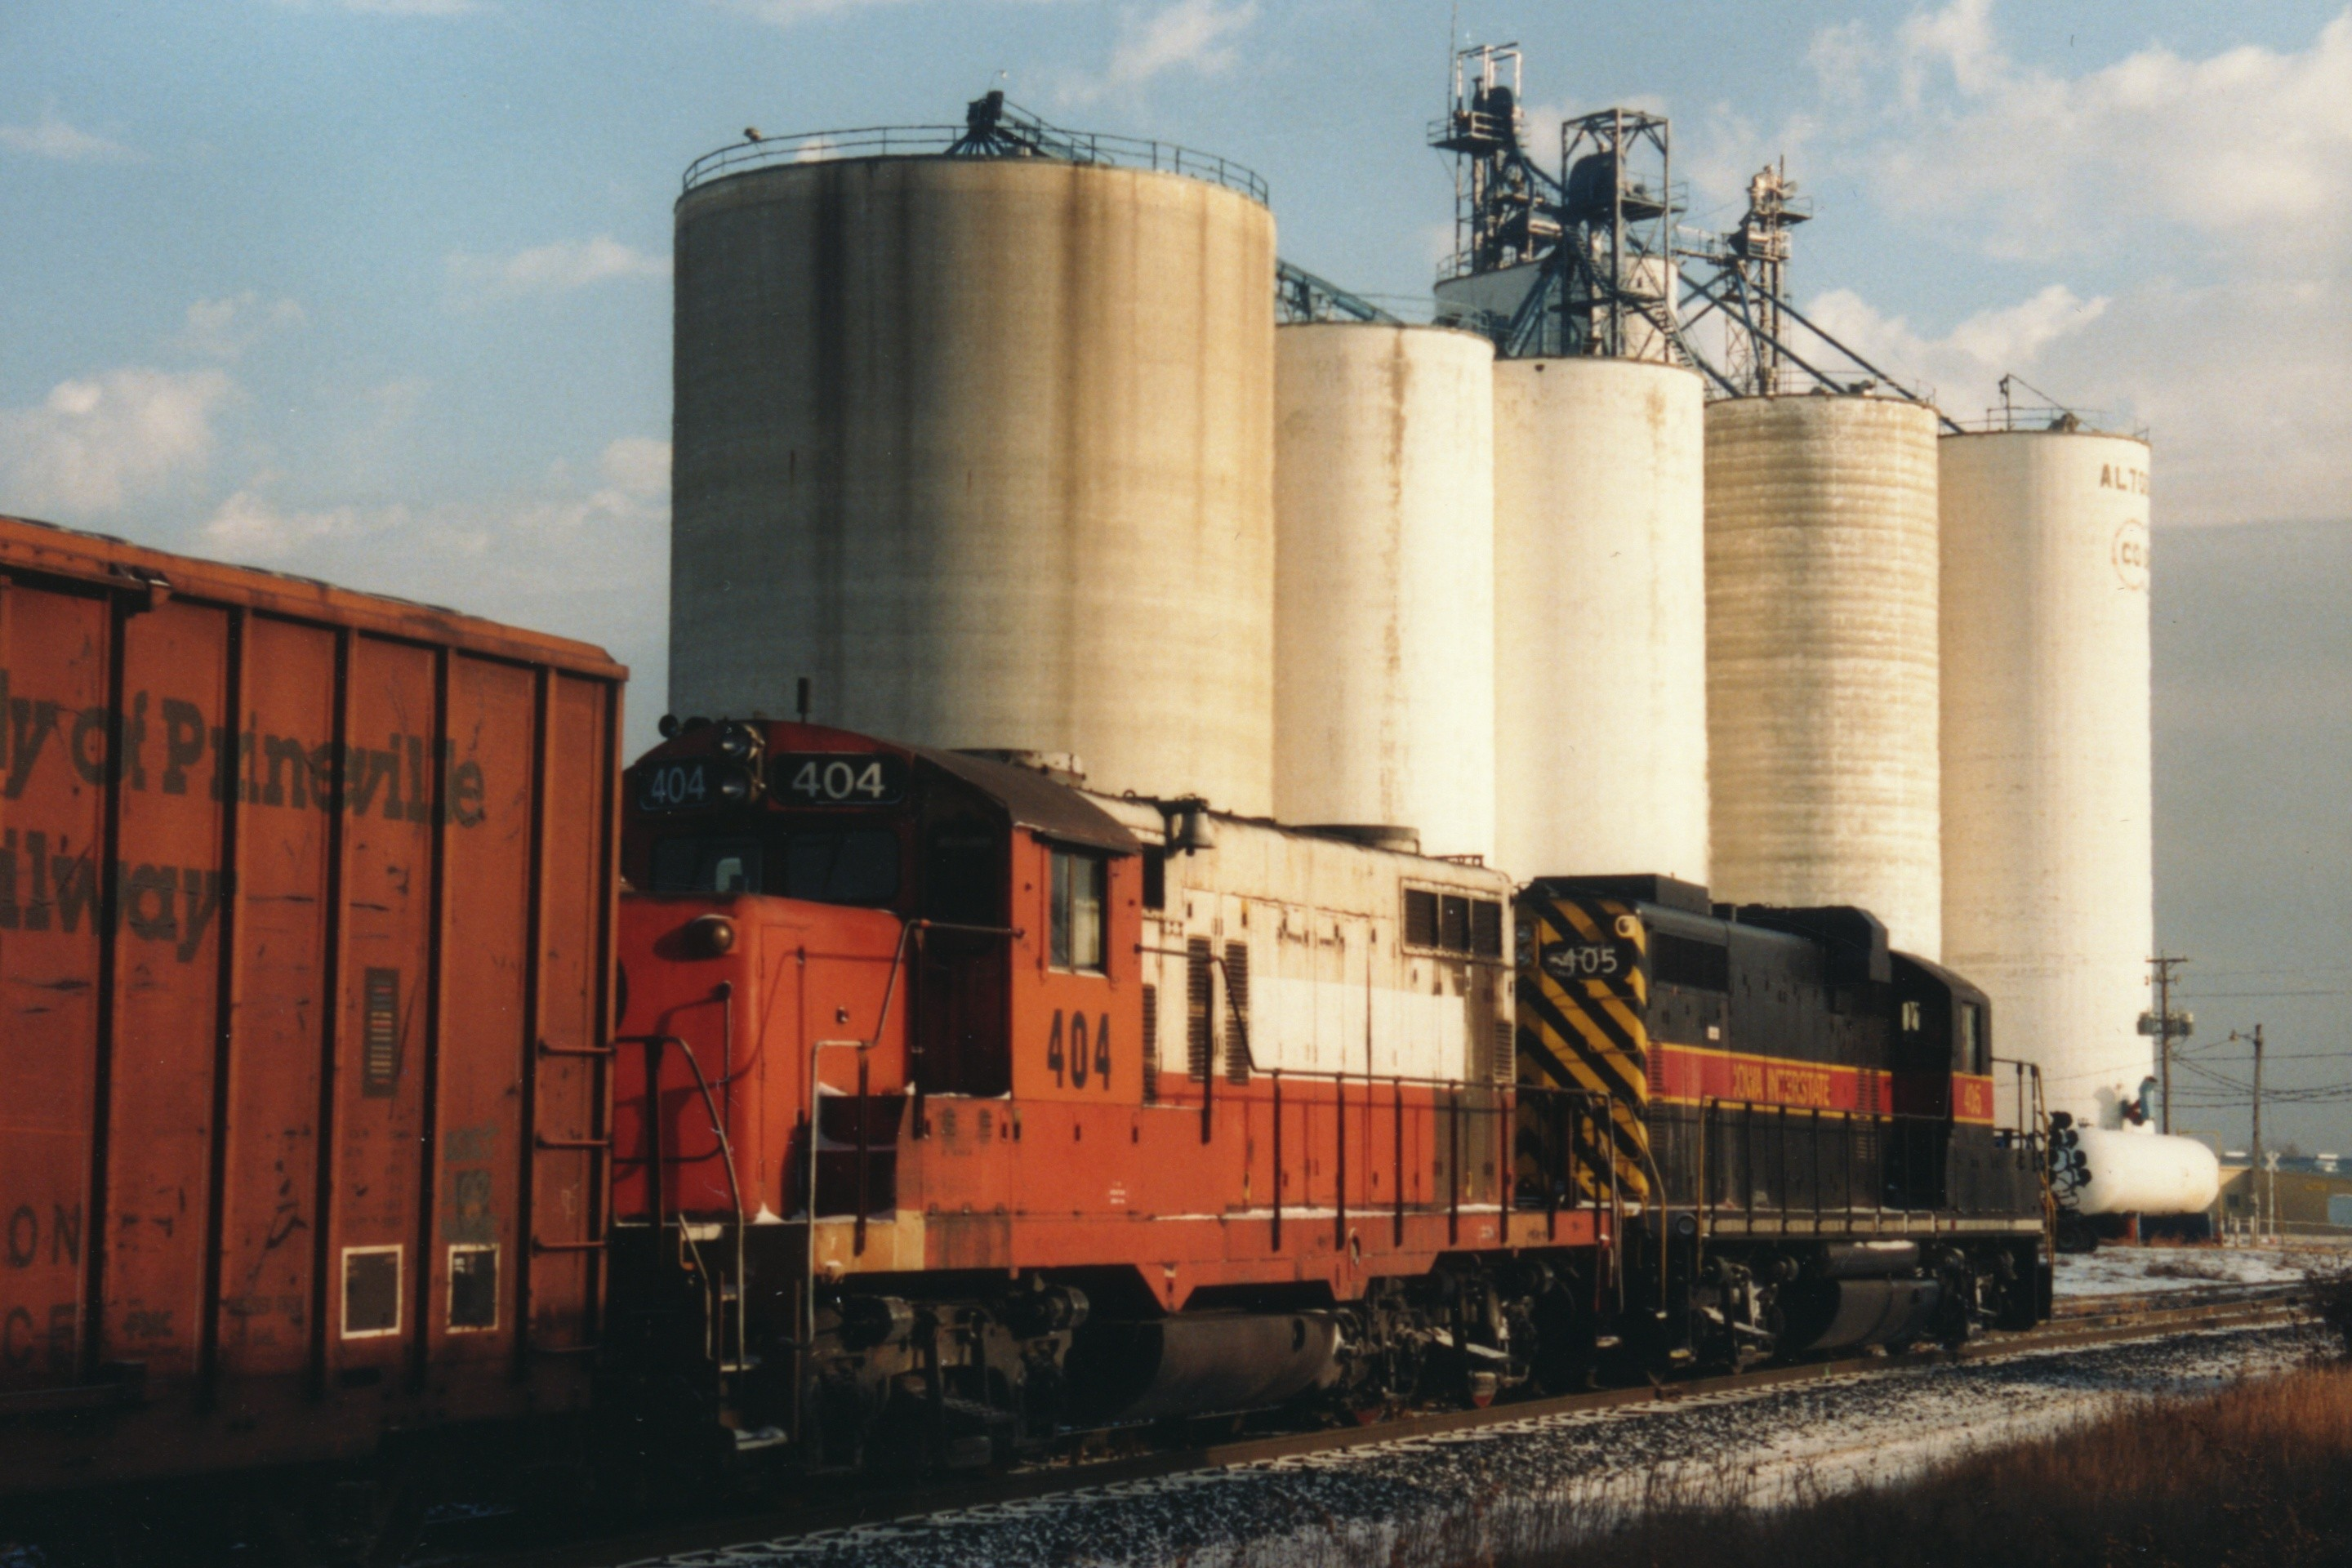 IAIS 404 at Altoona, IA on 01-Nov-1993